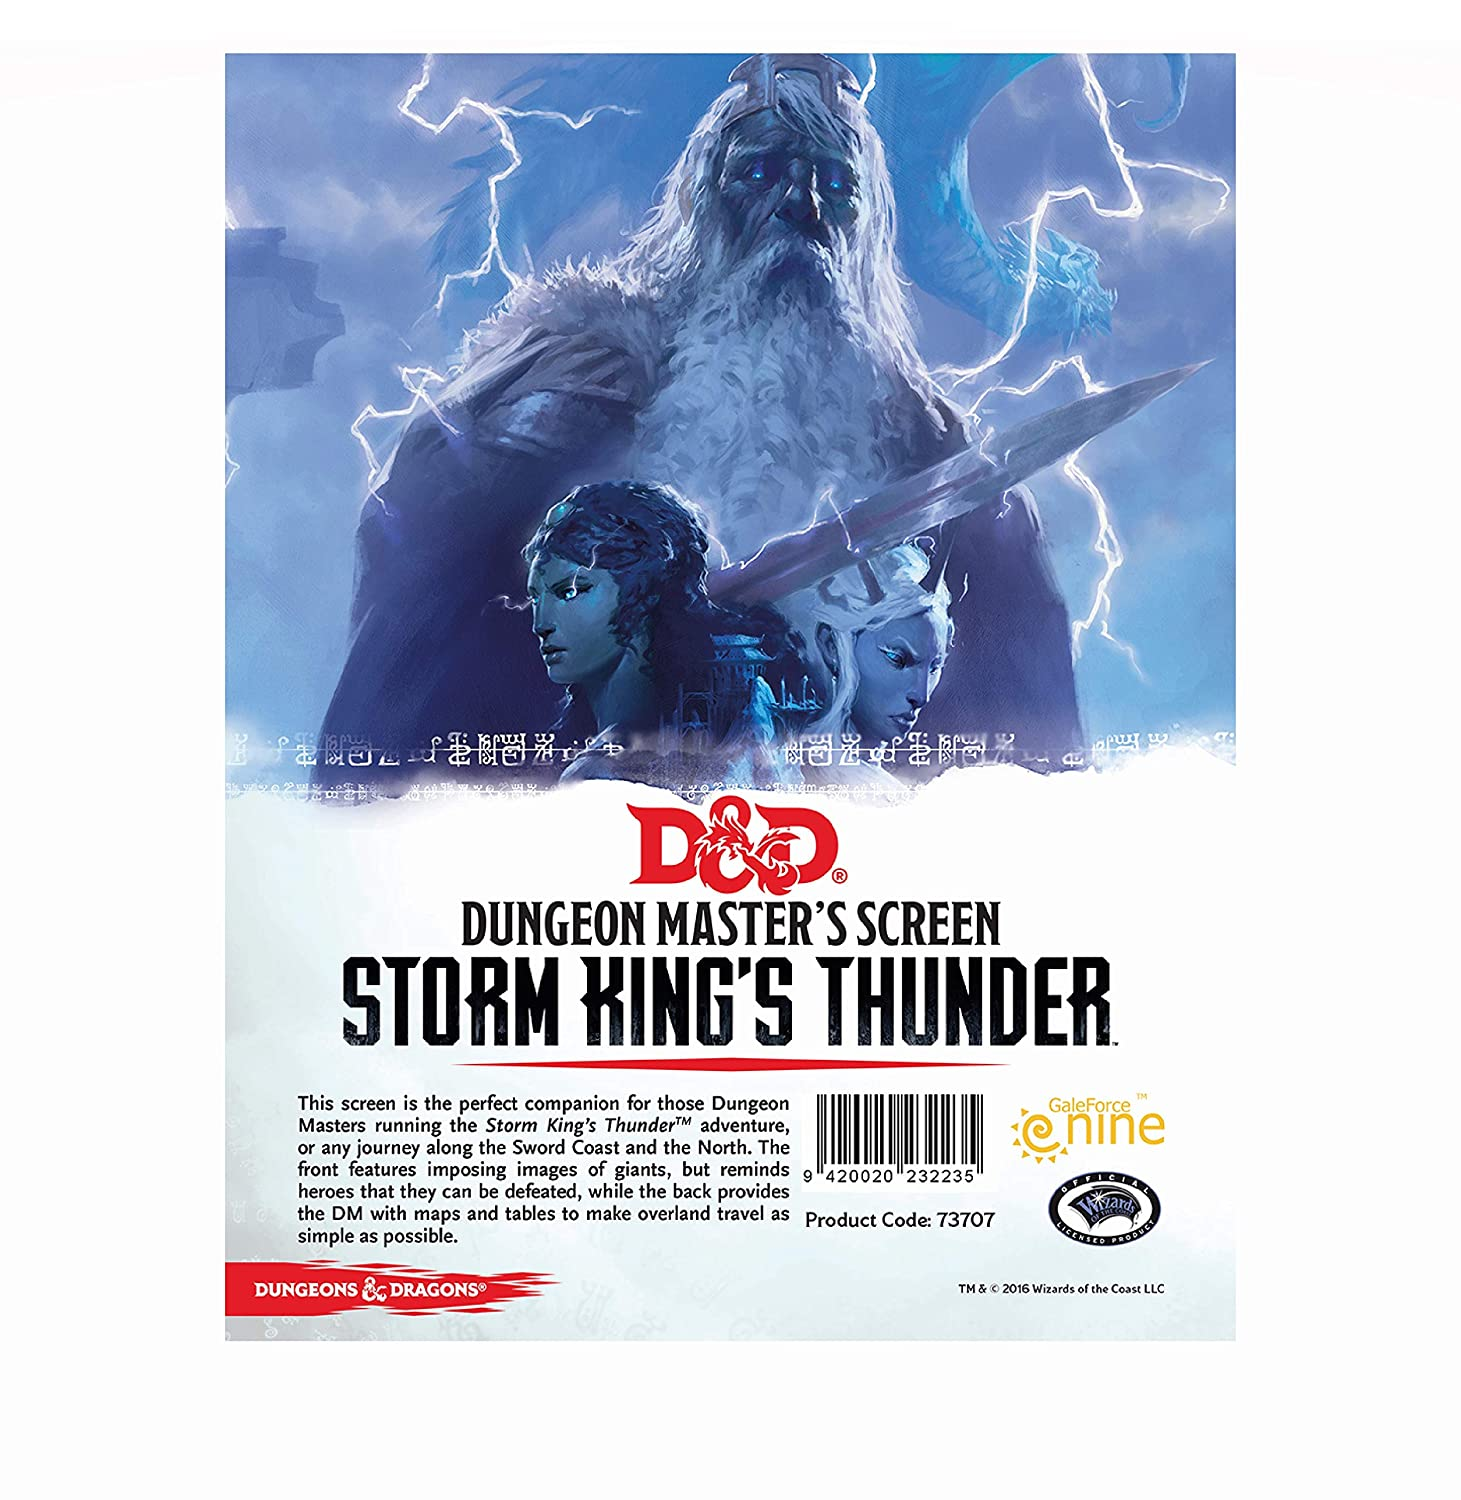 photograph regarding Storm King's Thunder Printable Maps titled Dungeons Dragons - \